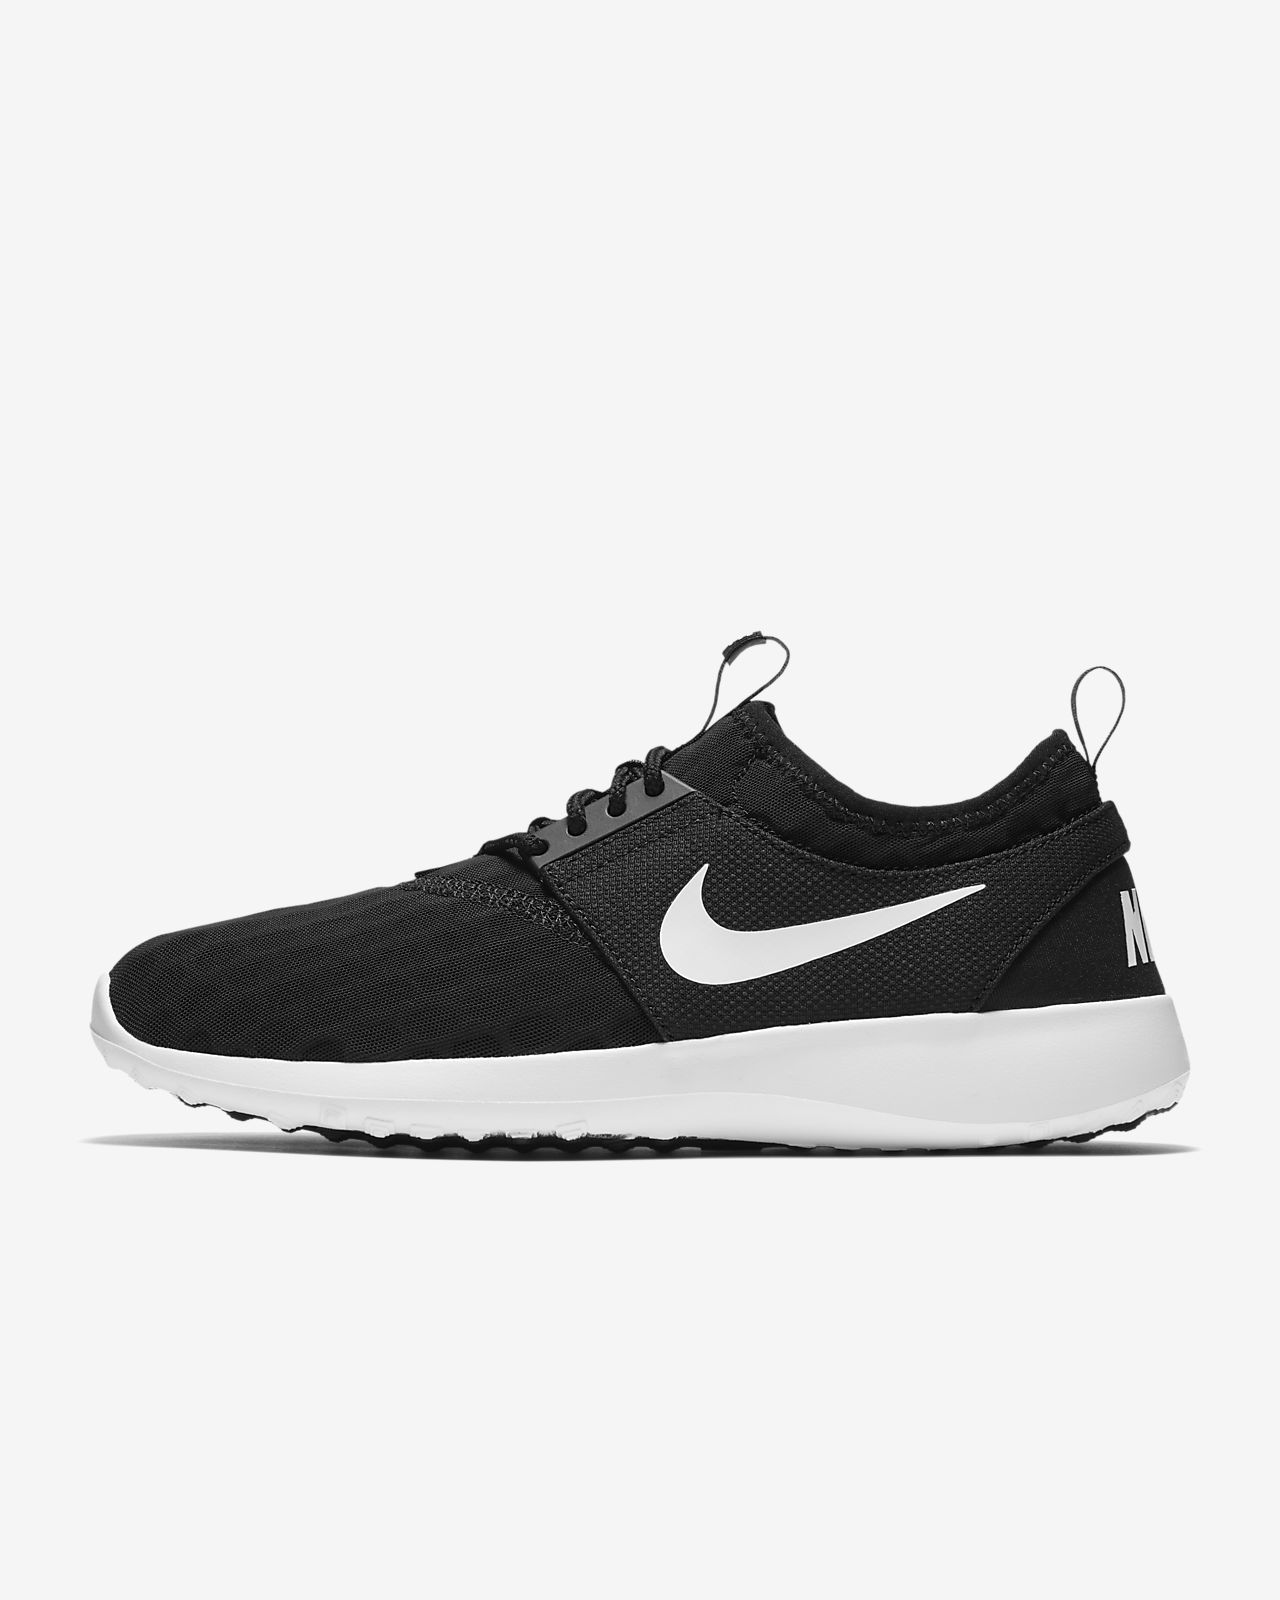 Nike Juvenate Women's Shoe